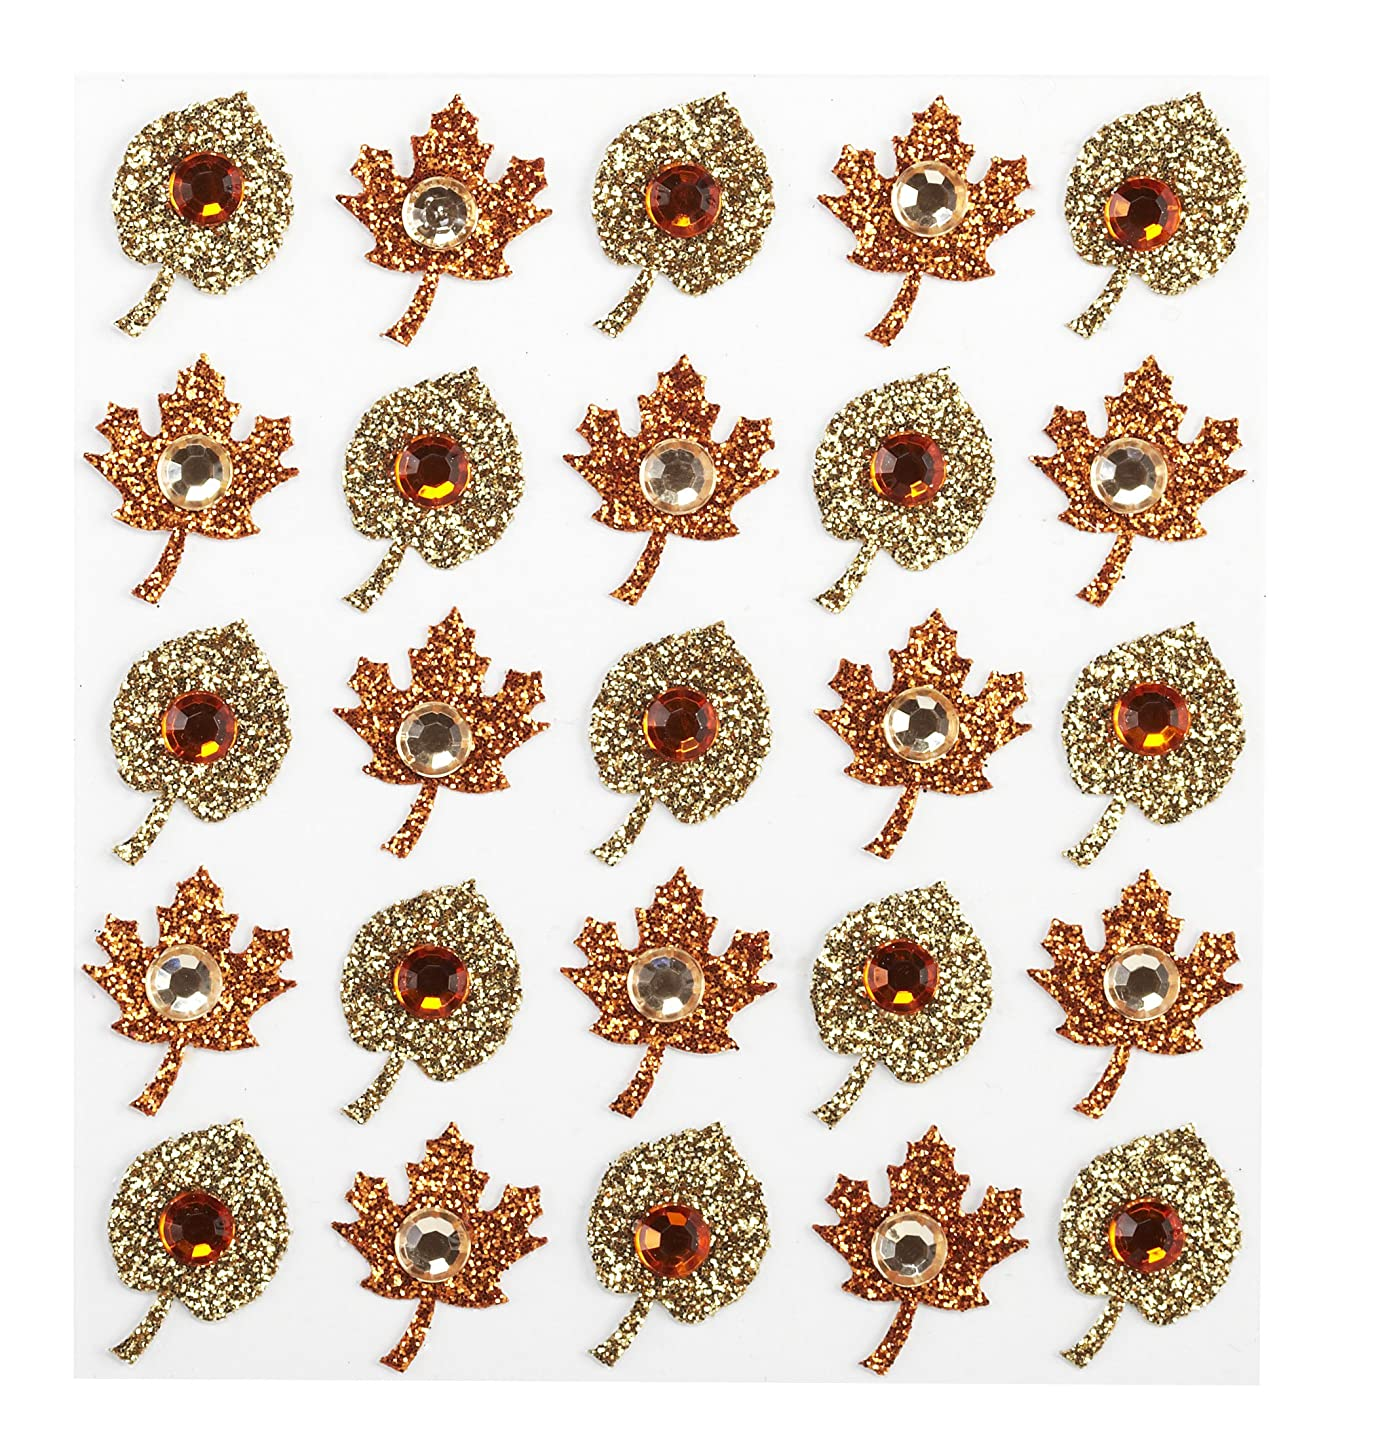 Jolee's Boutique Dimensional Stickers, Fall Leaves